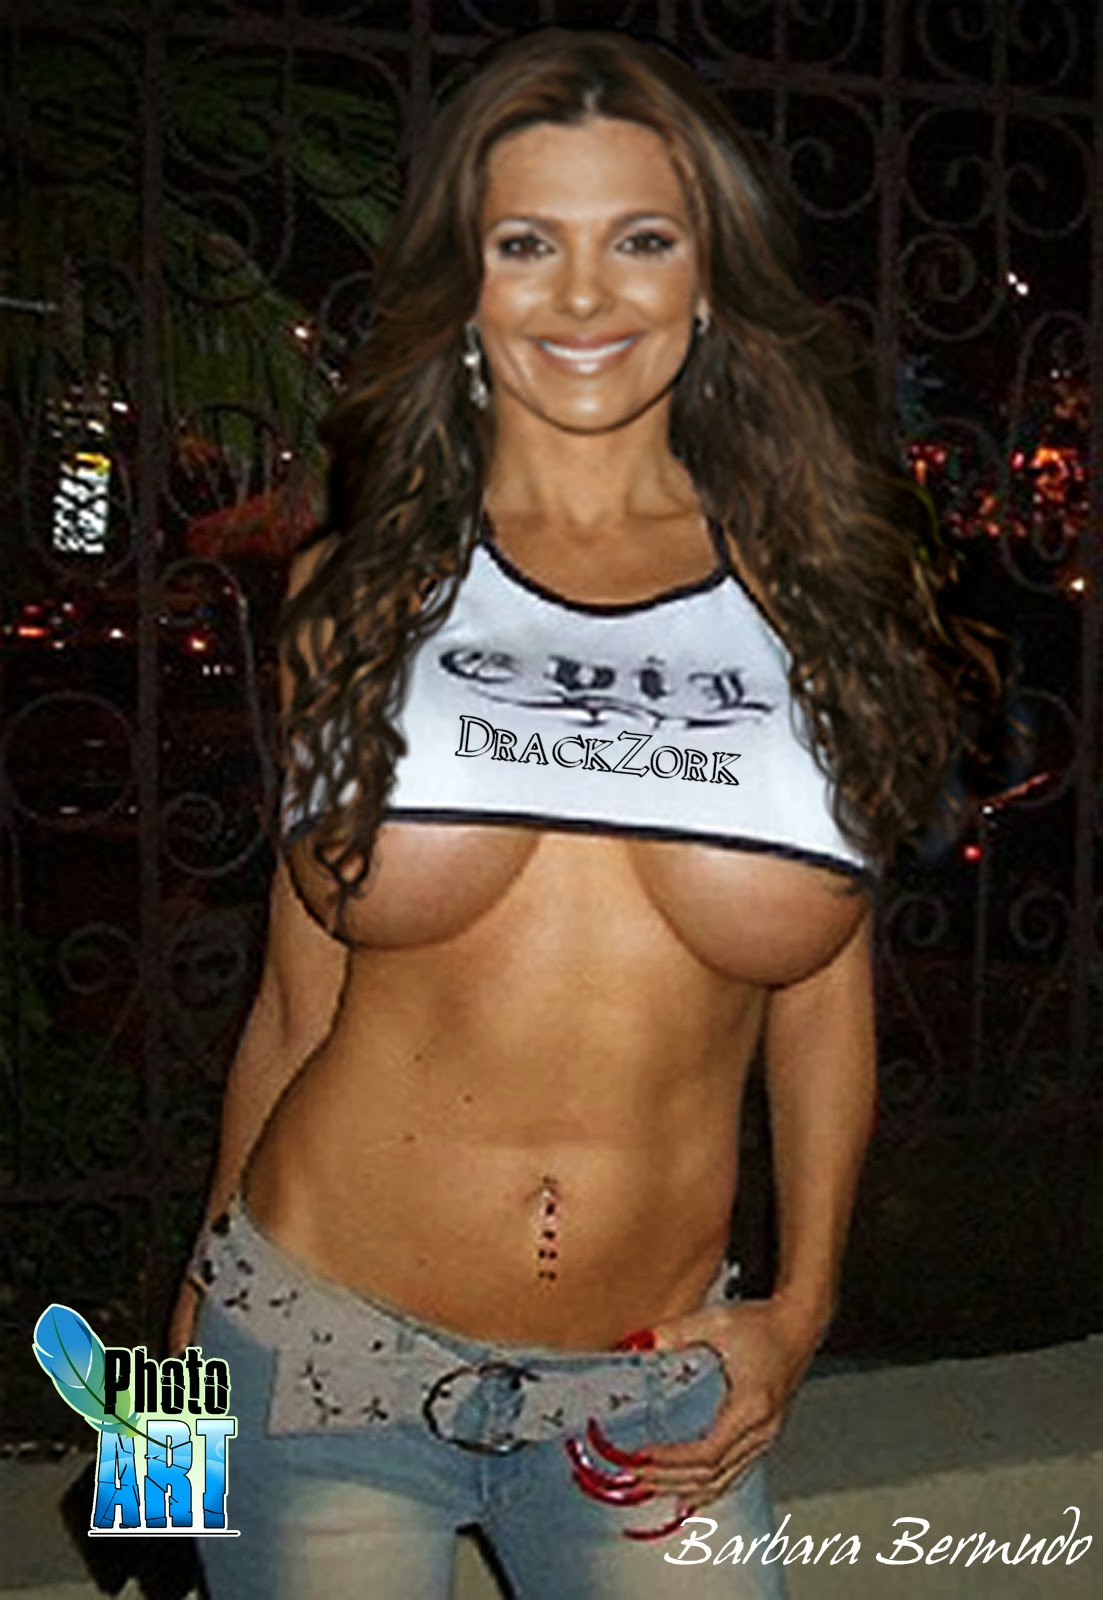 Topic Barbara bermudo porno amateur excited